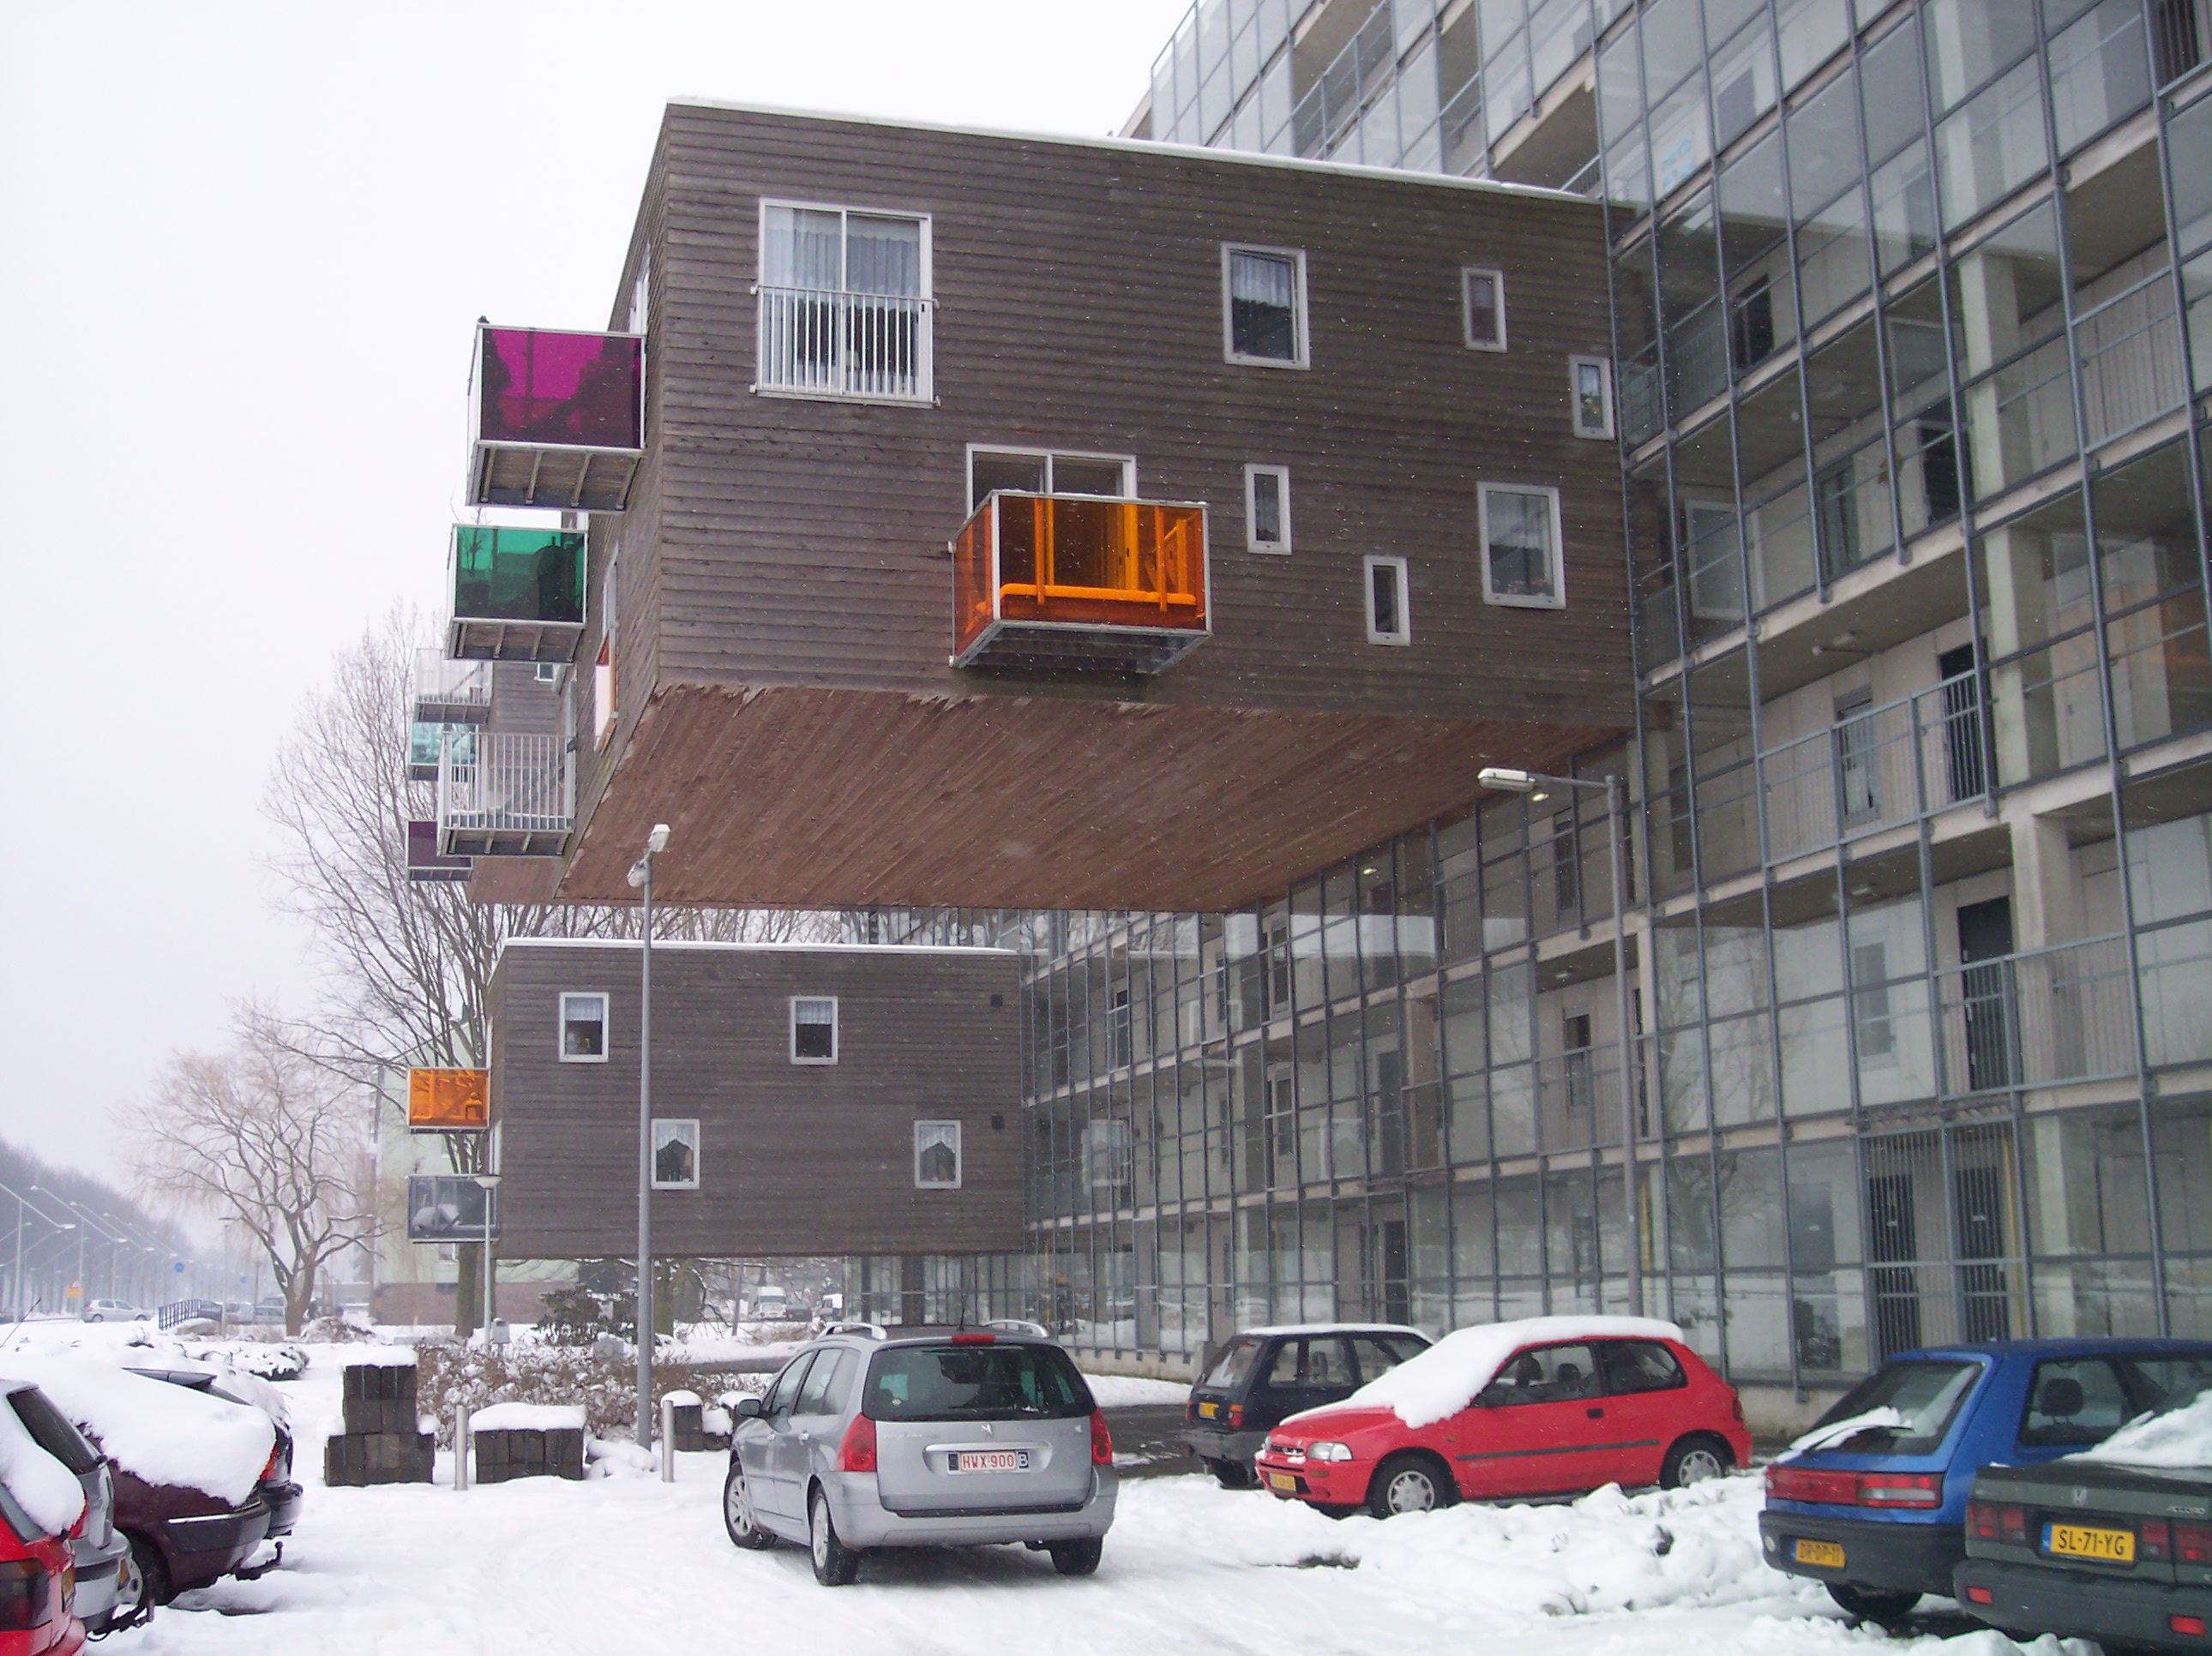 dario houses sticking out modern architecture design above the street snow cold winter royalty free